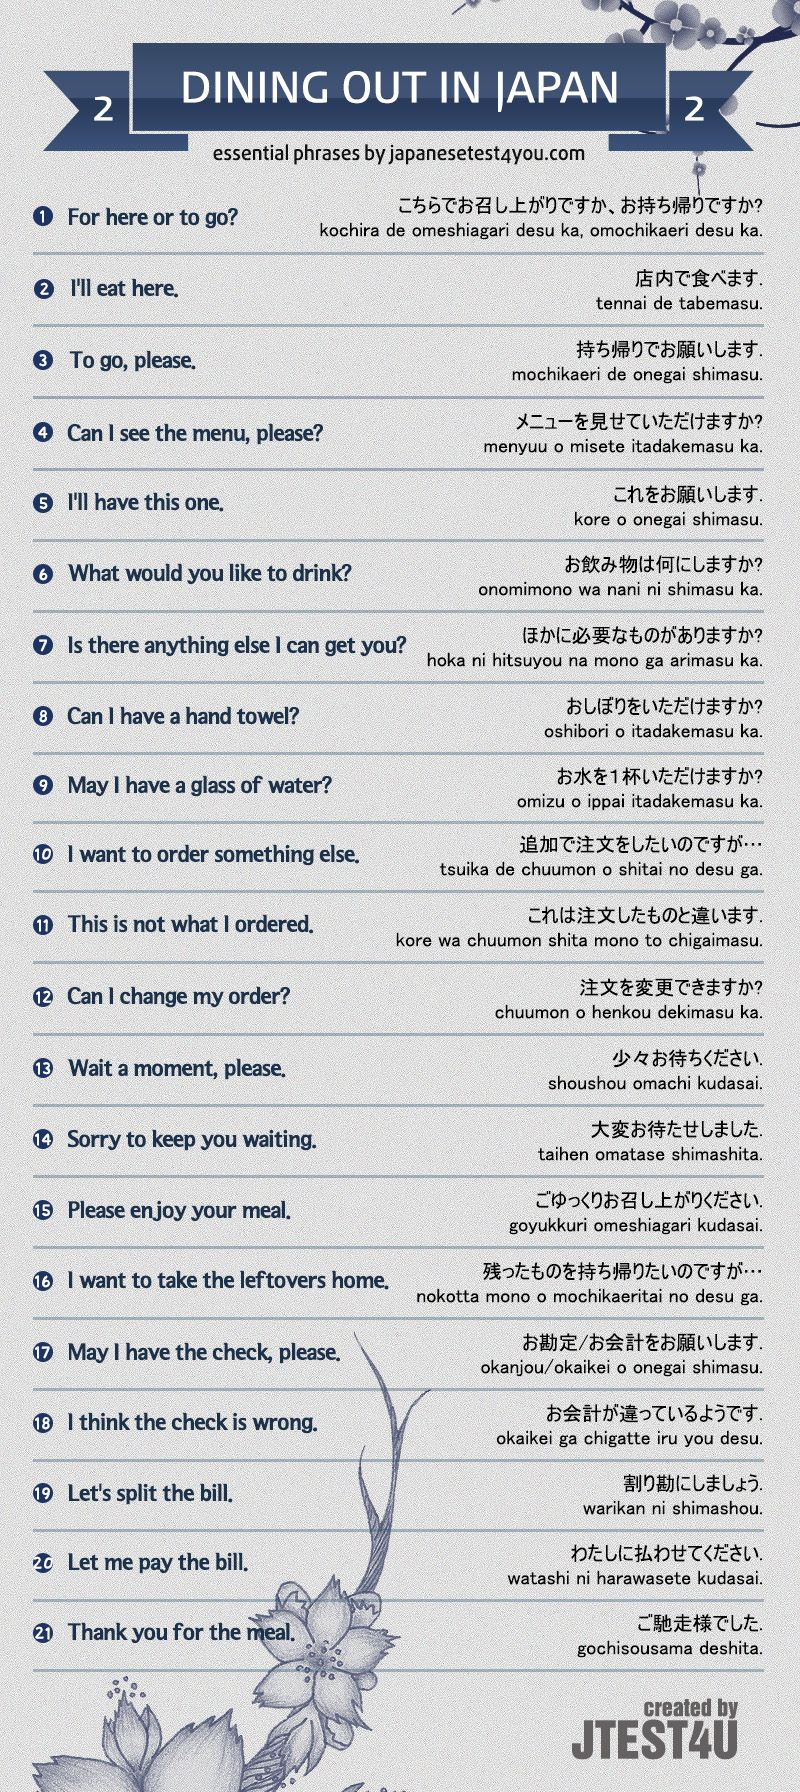 Pin by Norm Snead on Japanese | Japanese phrases, Japanese language